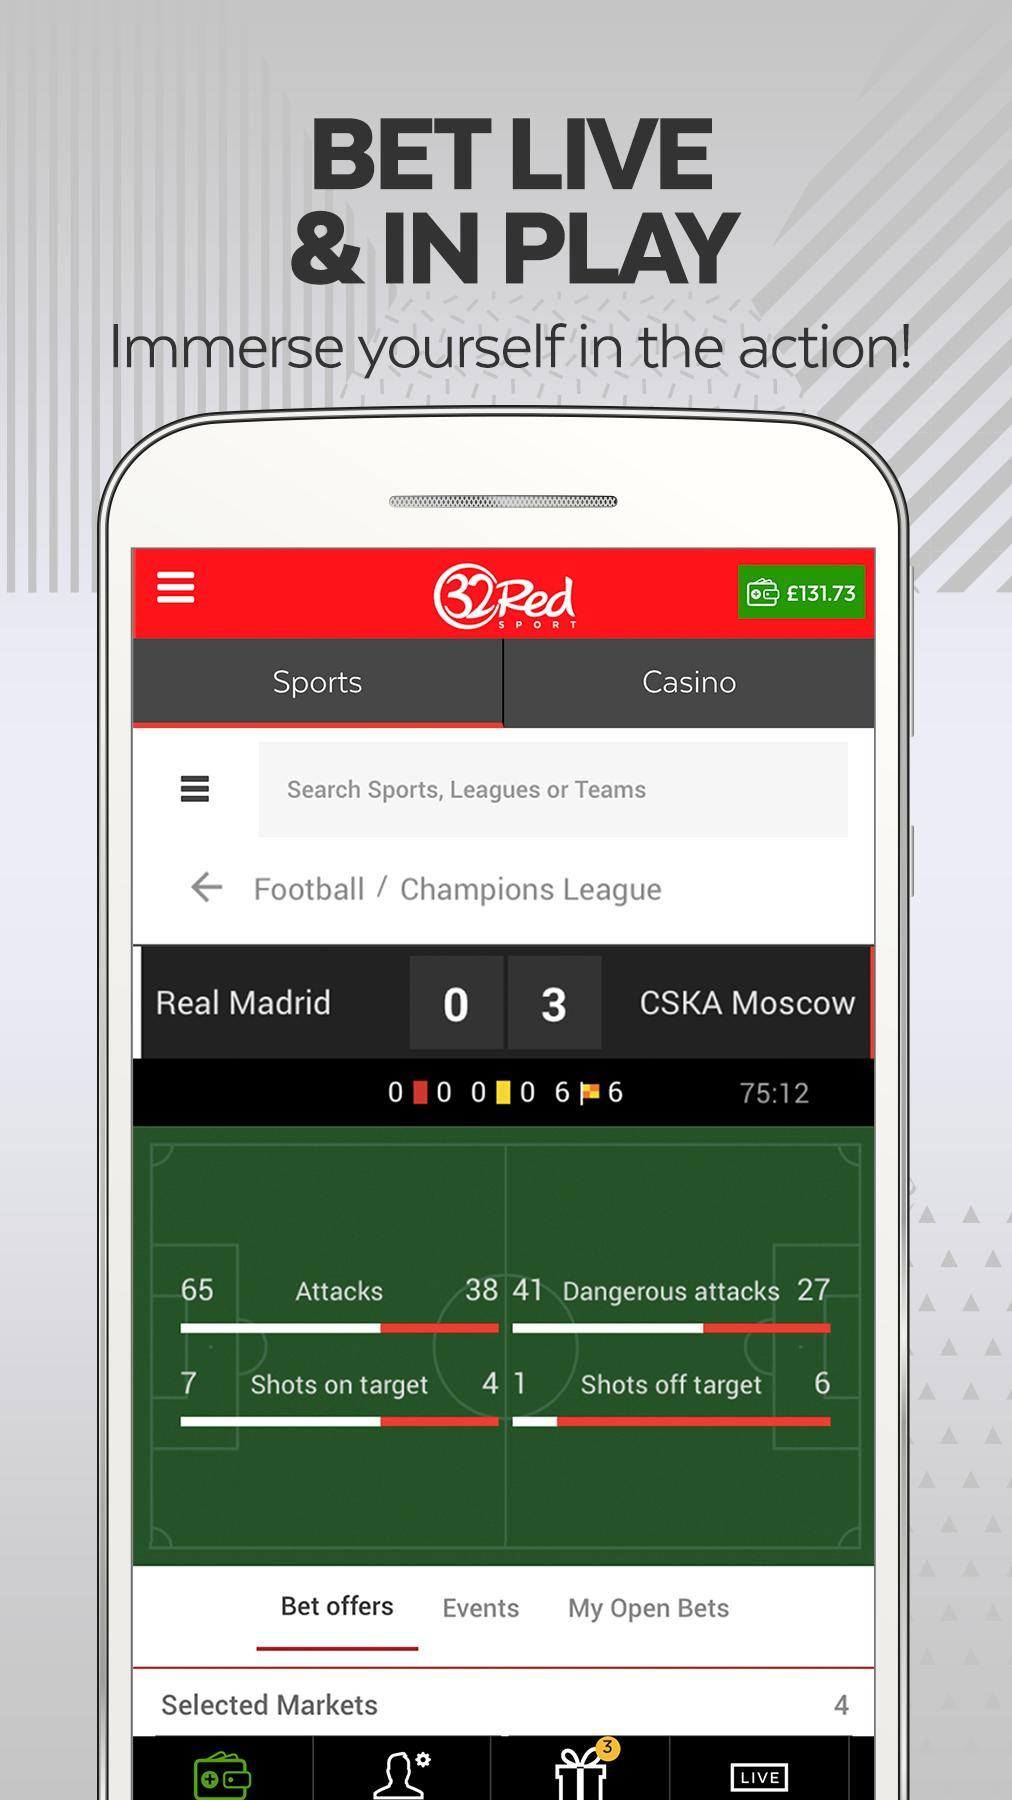 32red mobile sports betting minecraft lag fix mod 1-3 2-4 betting system